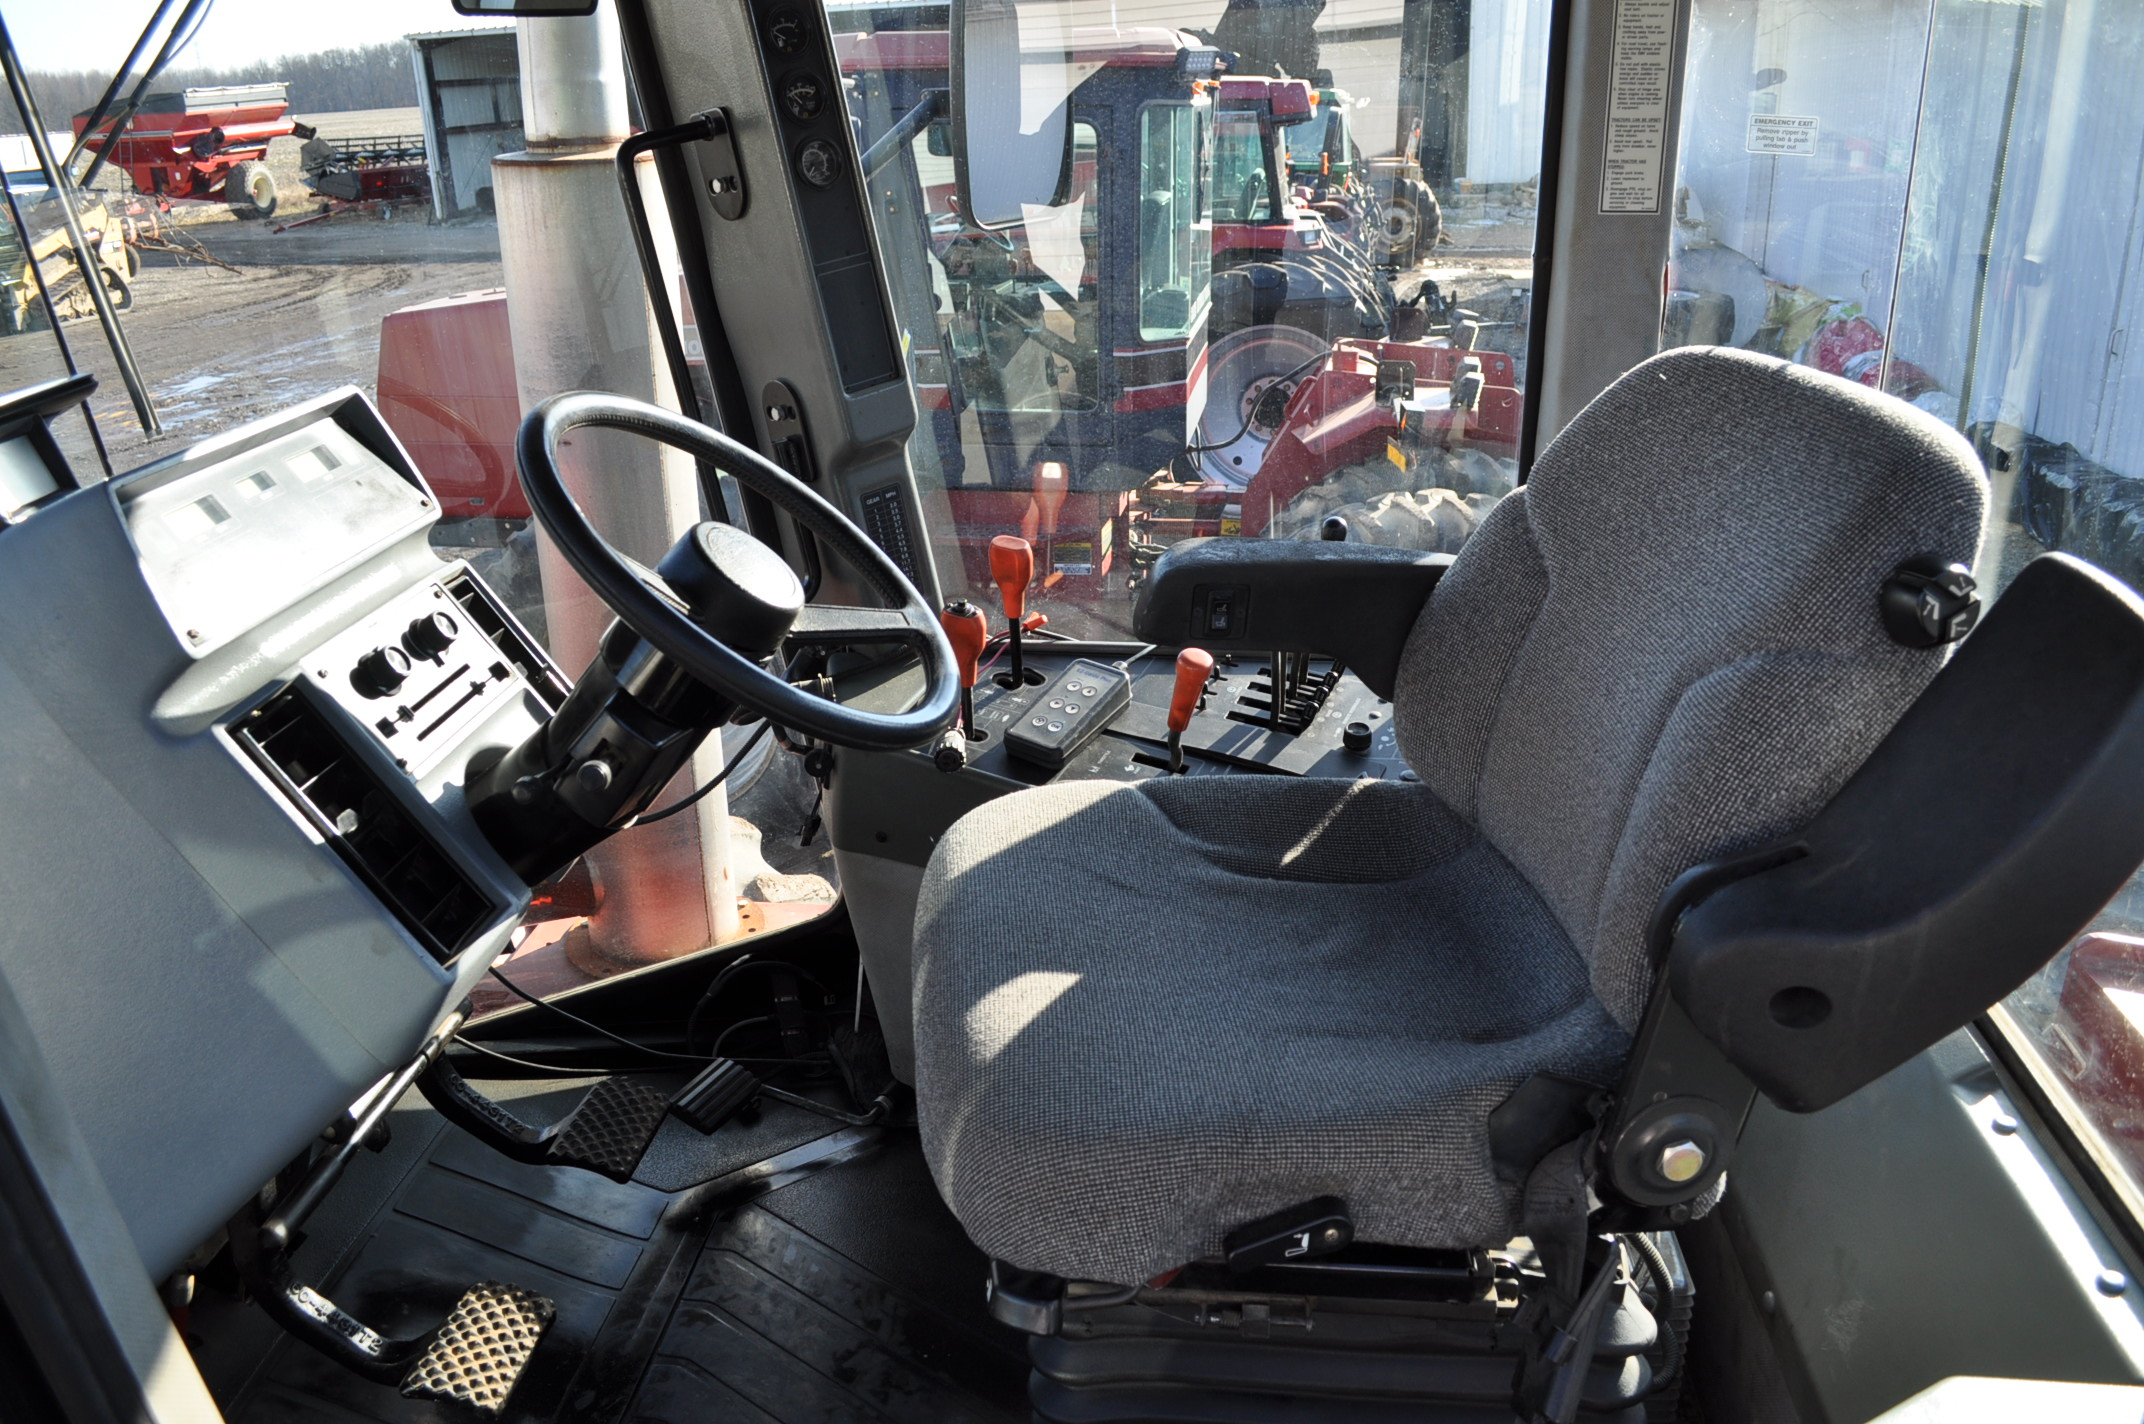 Case IH 9370 4WD tractor, 24.5R32 duals, power shift, skip shift, 4 hyd remotes, 4622 hrs, front - Image 17 of 23